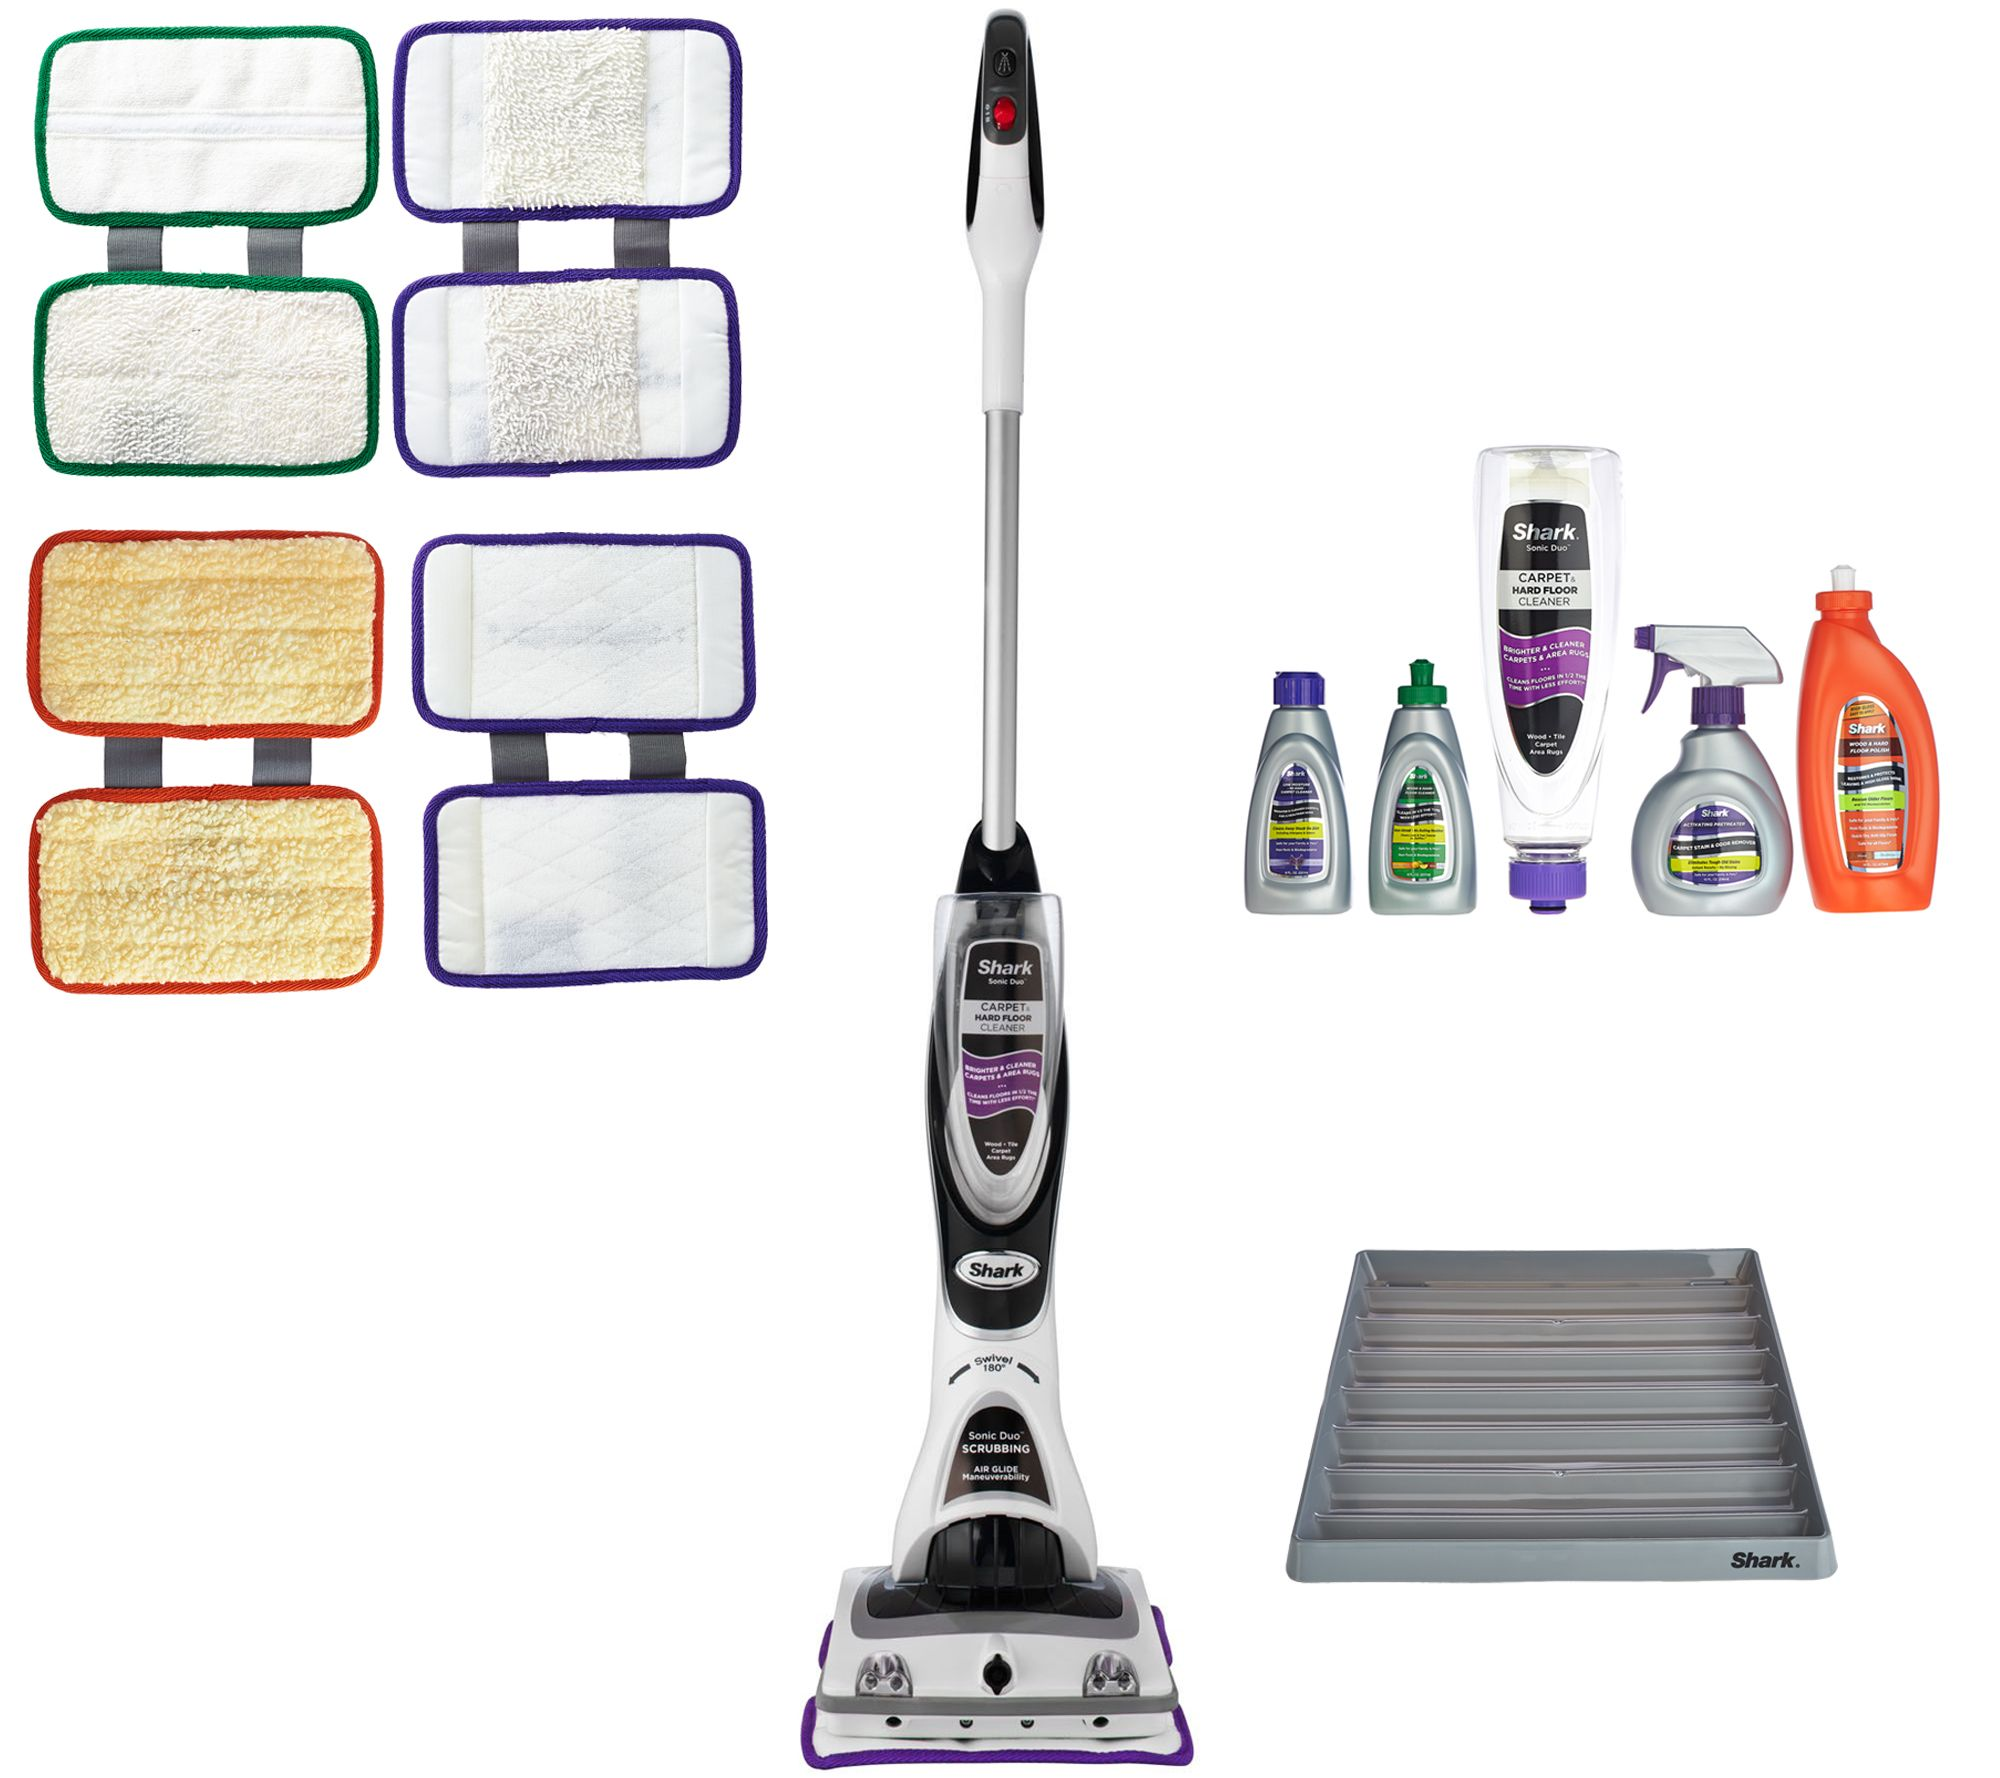 shark sonic duo carpets, rugs & hard surface floor cleaner - page